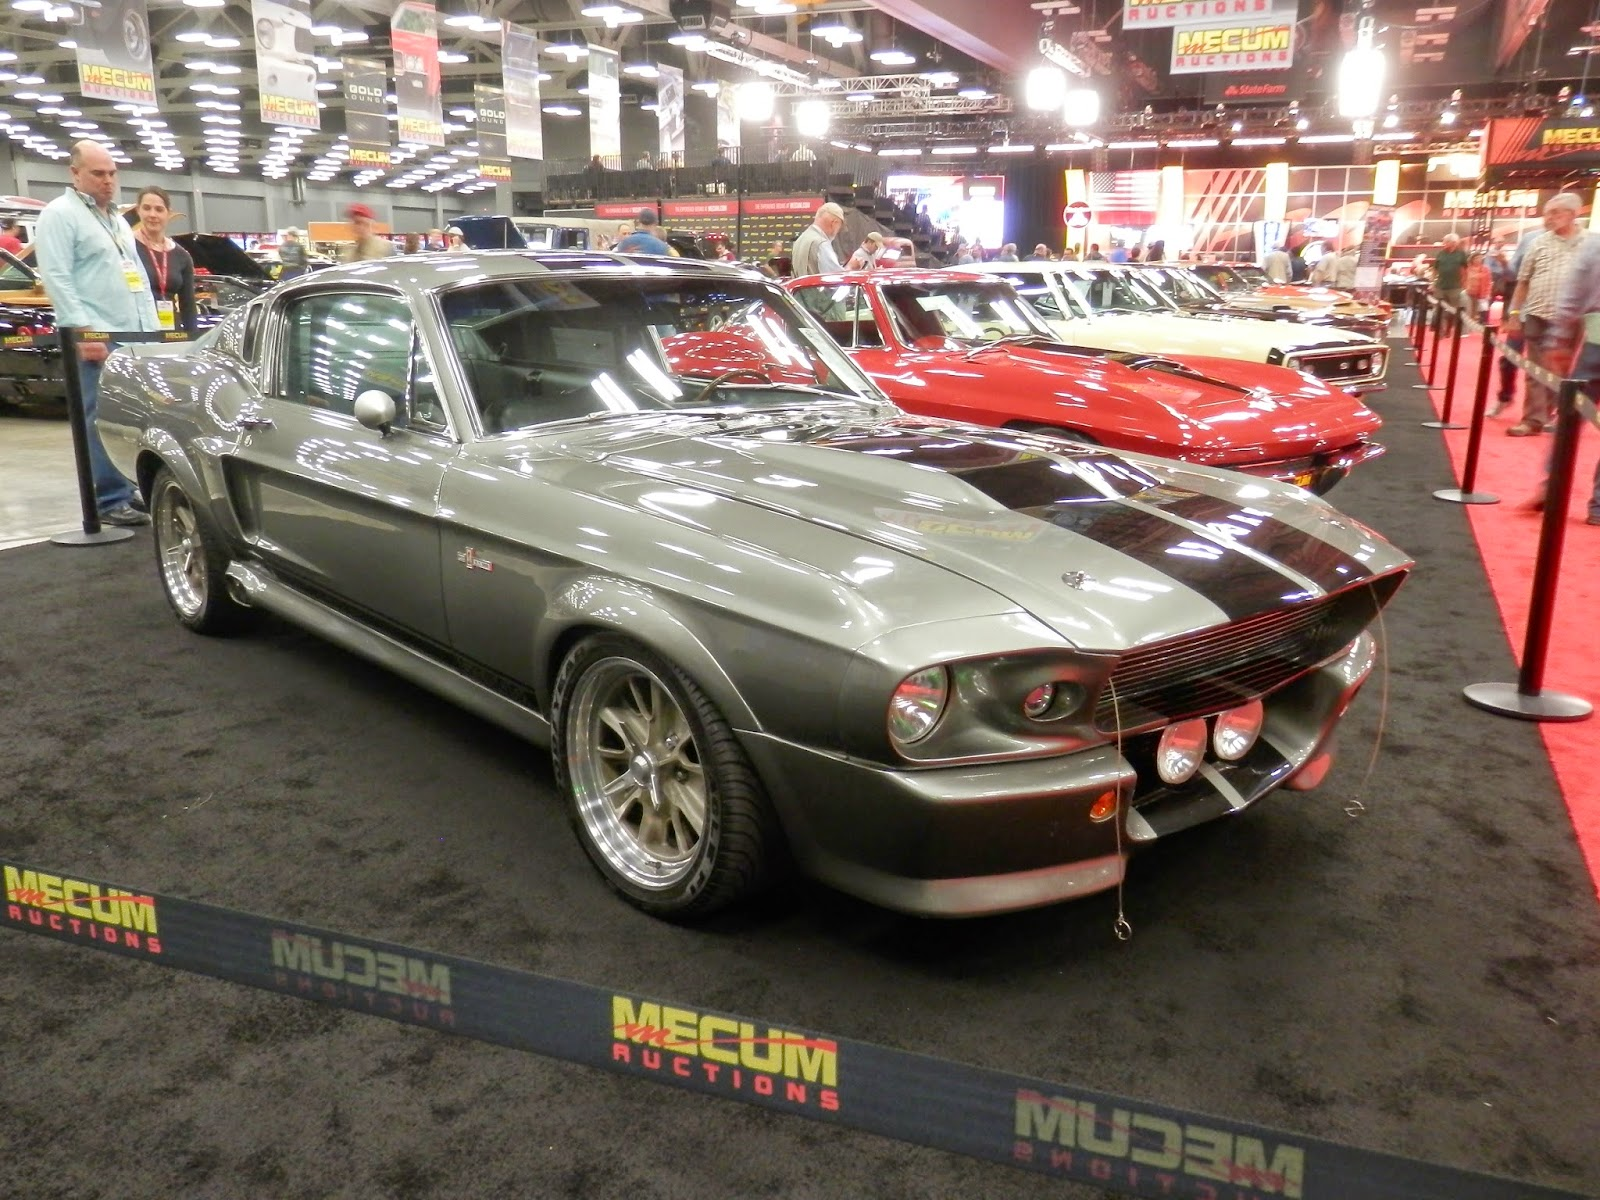 Shifting Gears: Mecum Auction Coverage